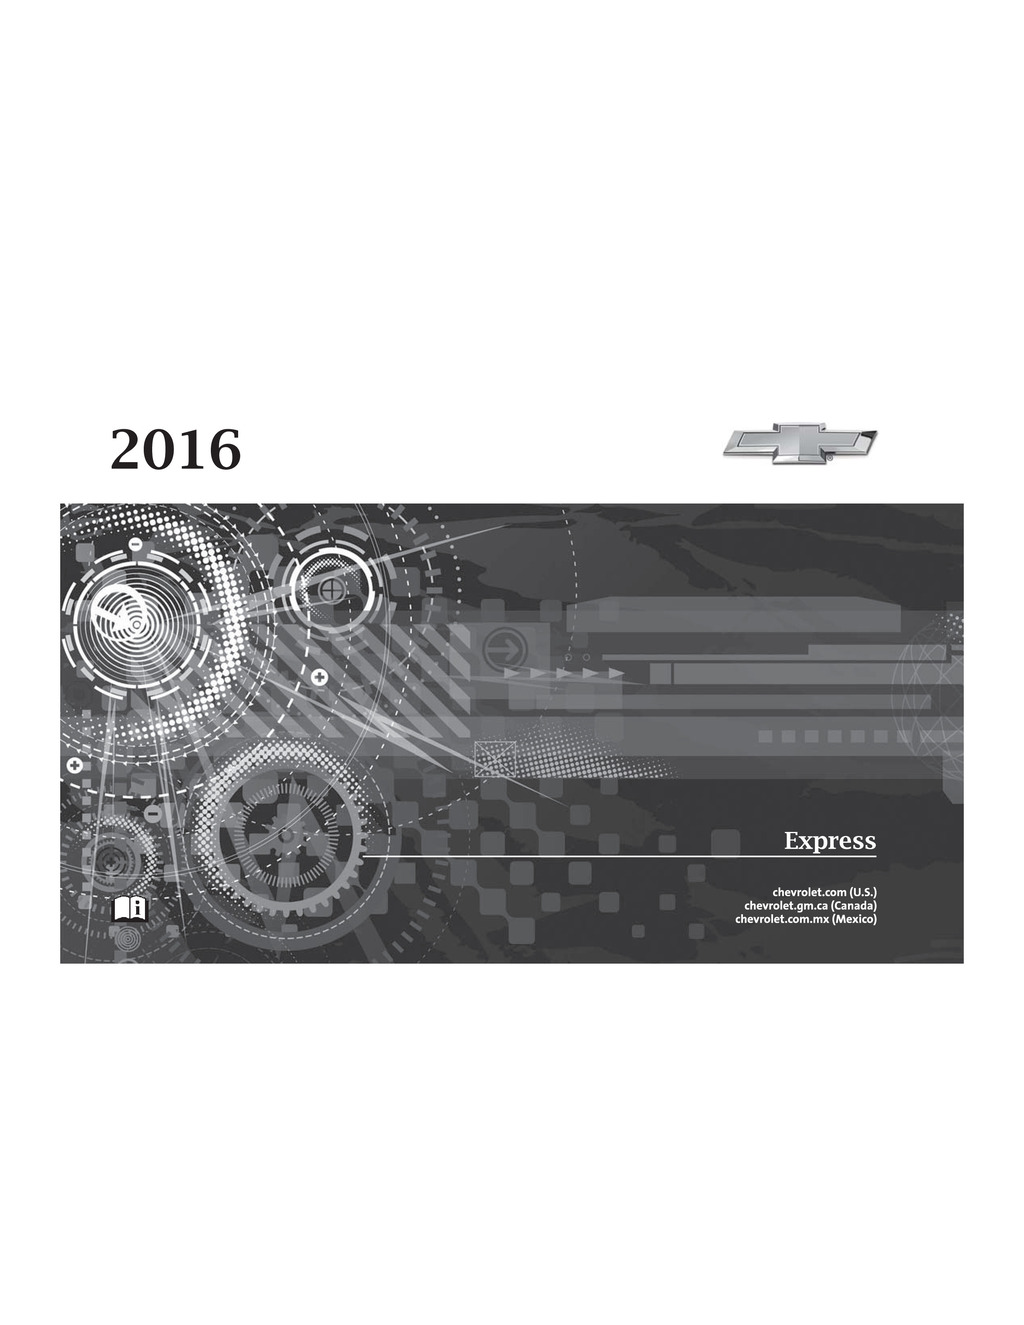 2016 Chevrolet Express owners manual